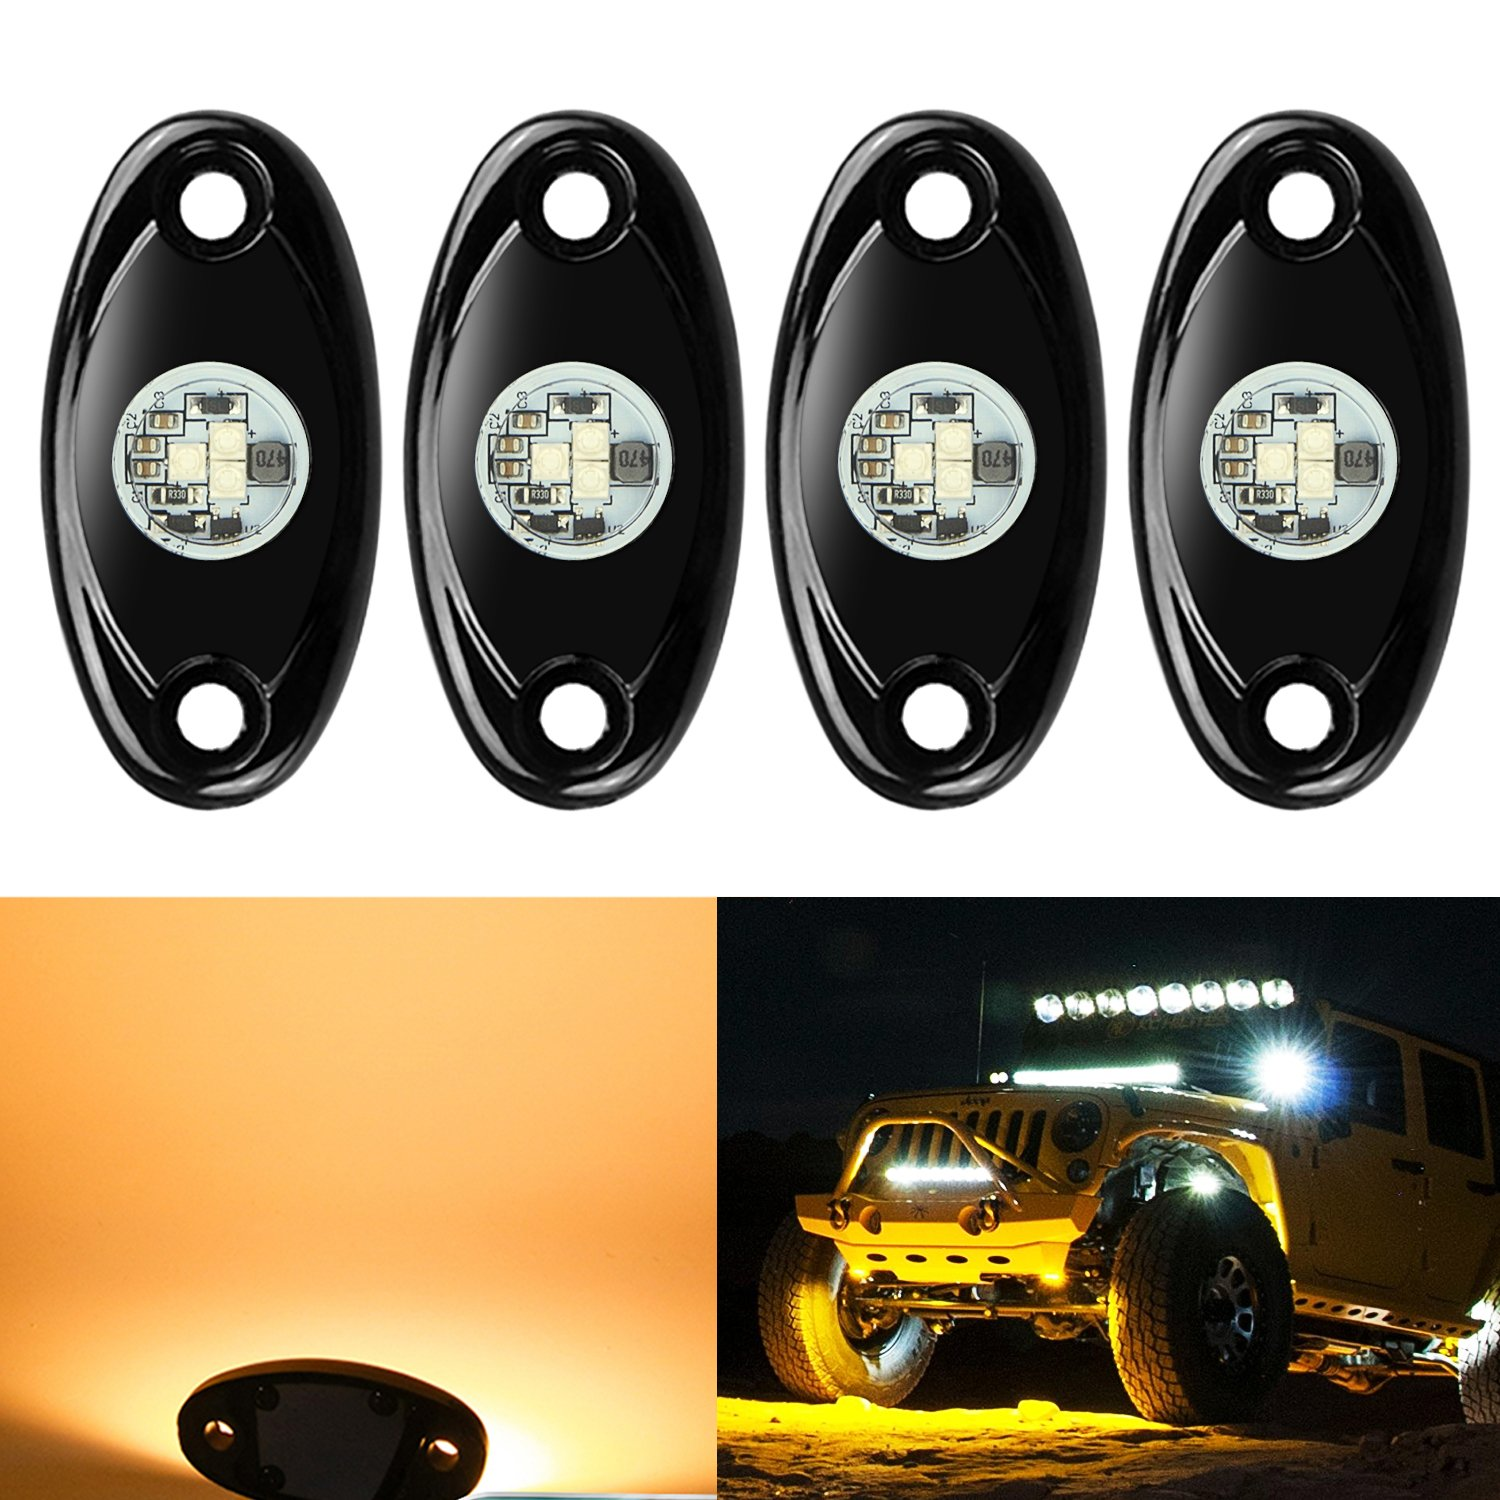 hight resolution of get quotations 4 pods led rock lights kit ampper waterproof underglow led neon trail rig lights for